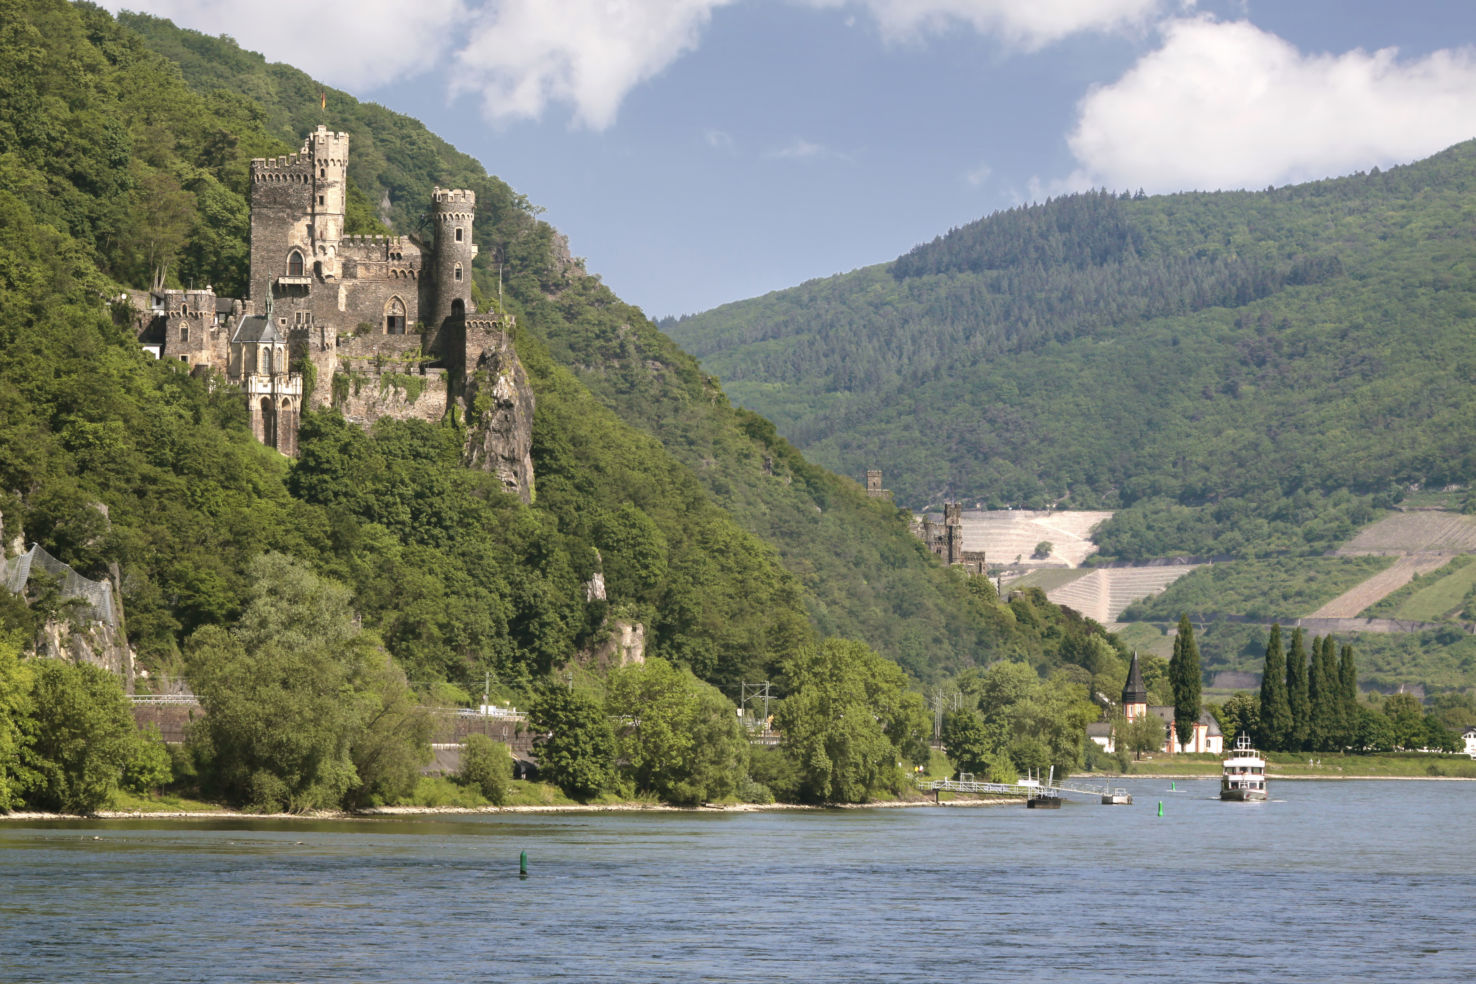 Castle Reichenstein near Trechtingshausen in Middle Rhine Valley, Rhineland-Palatinate, Germany.